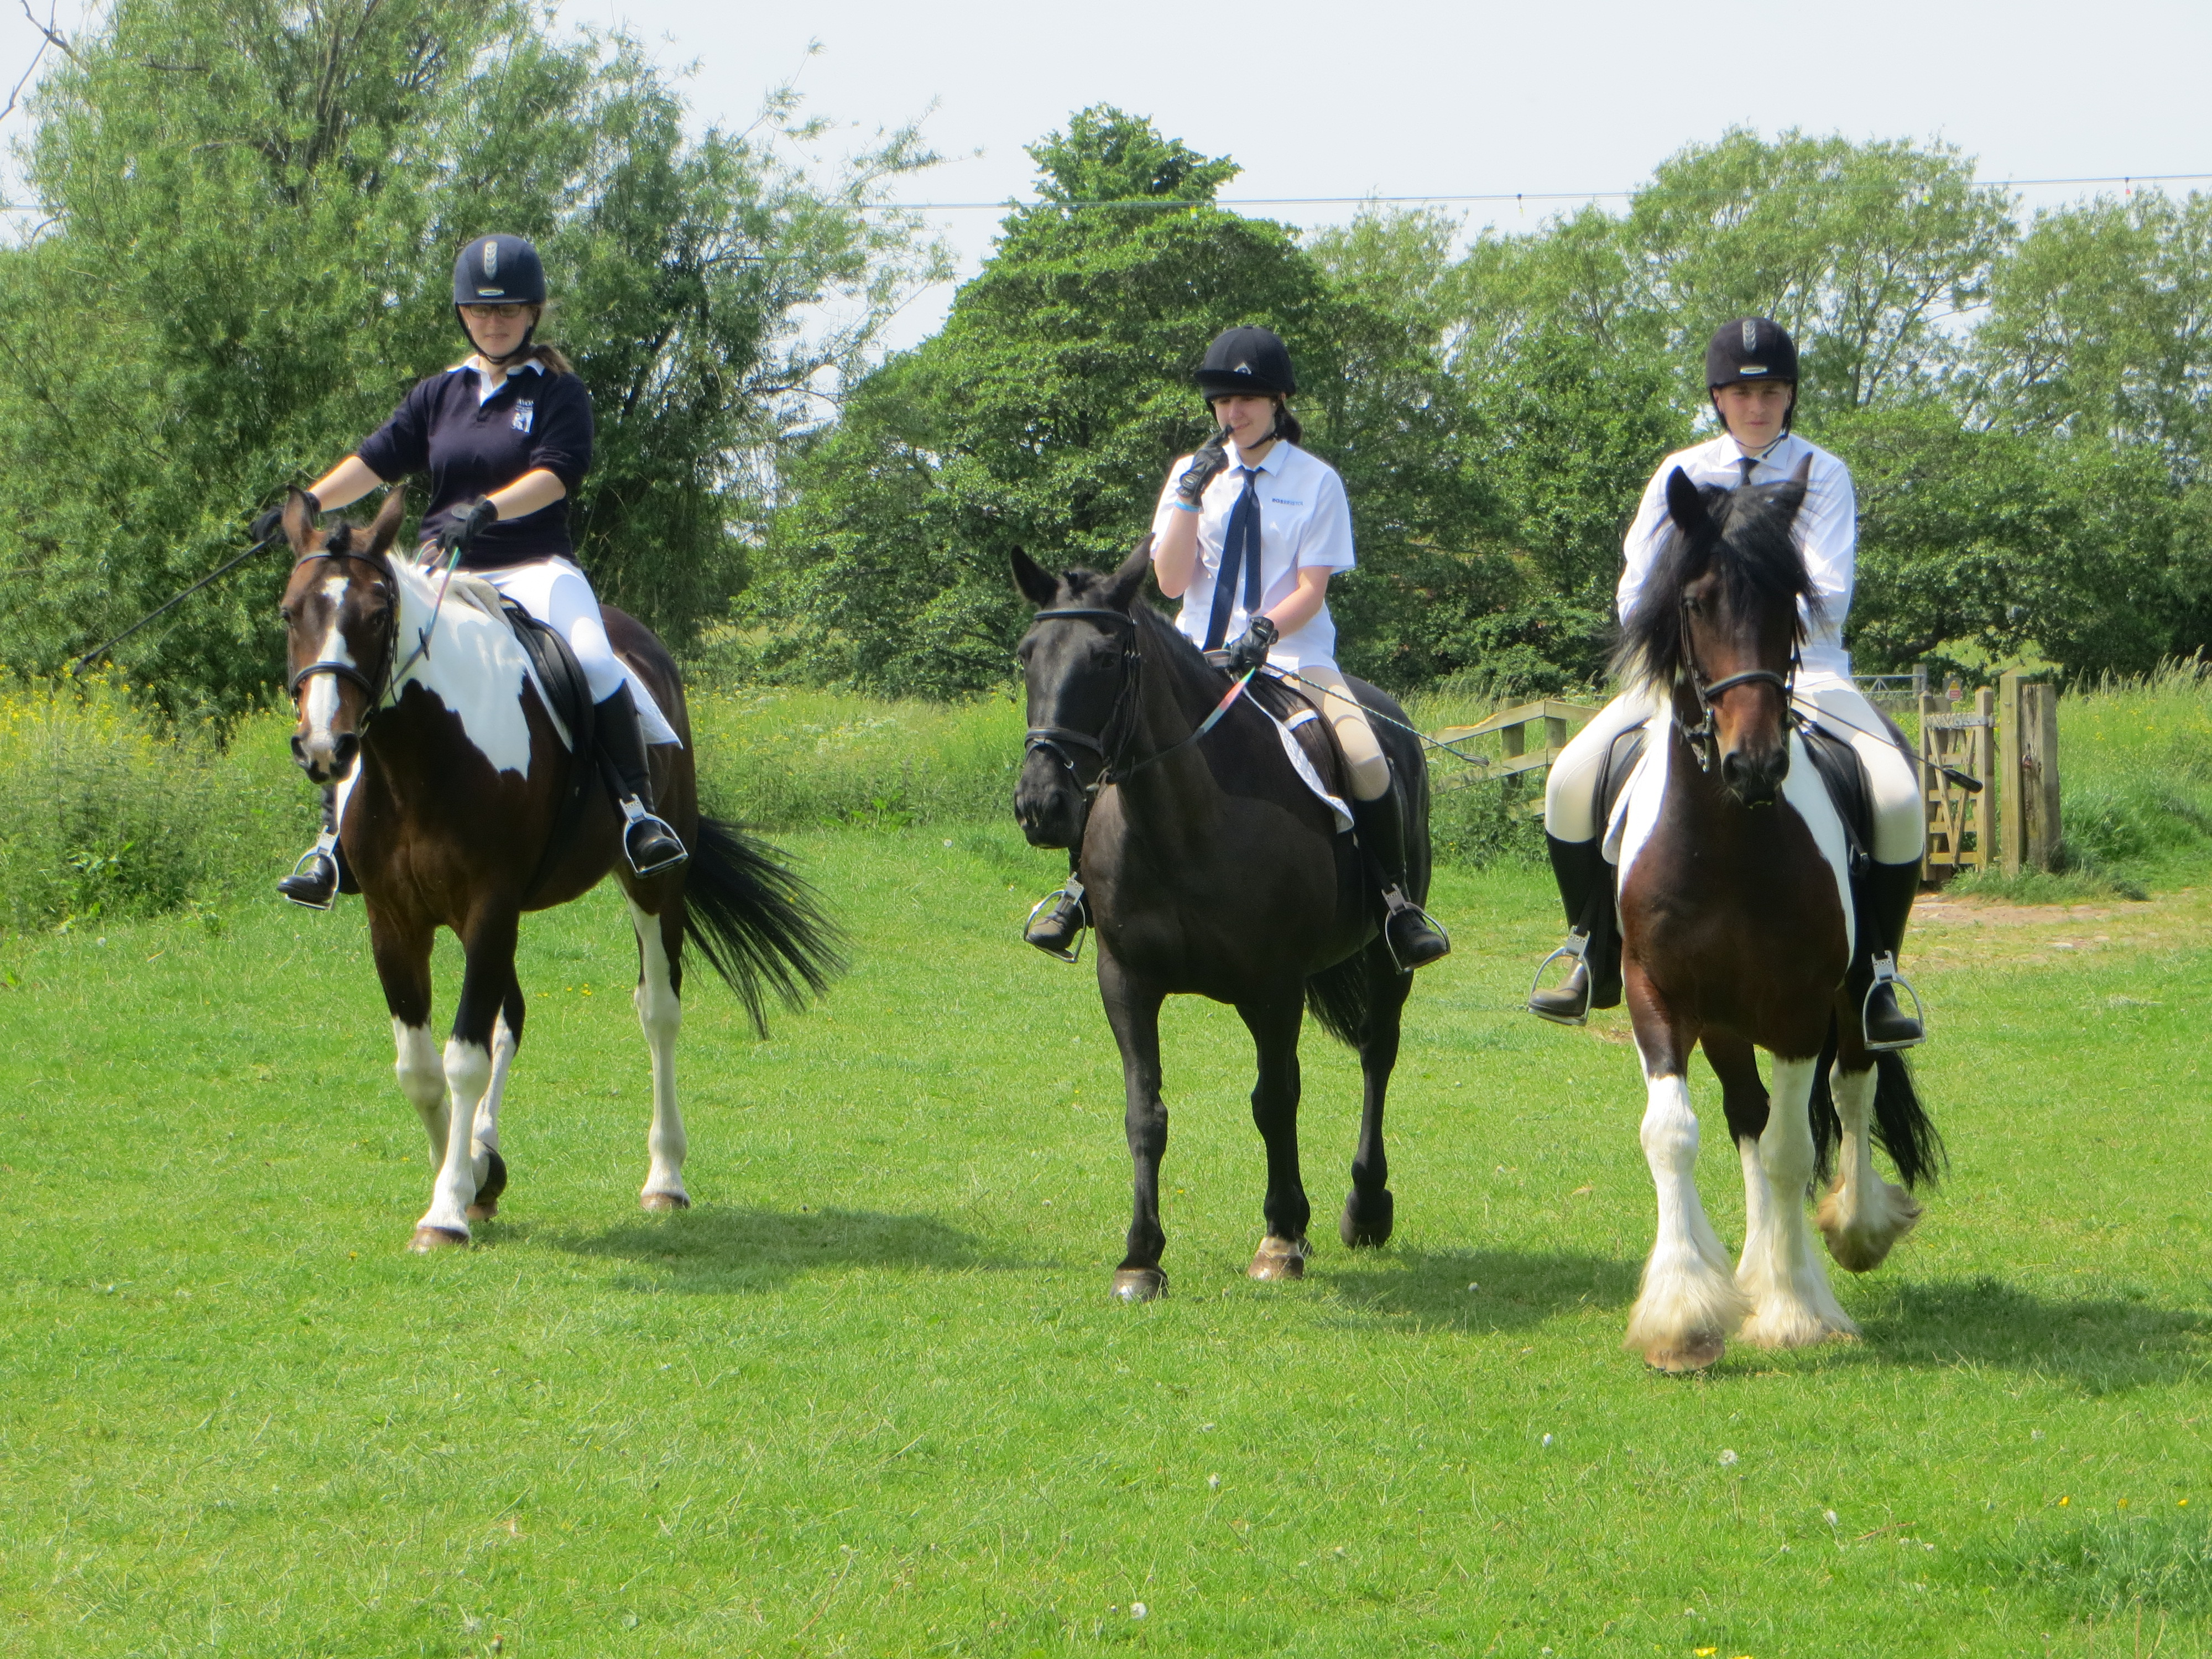 Our wonderful trio of riders and horses: Geroge on Robbie, Stella on Hope and Milie on Bella